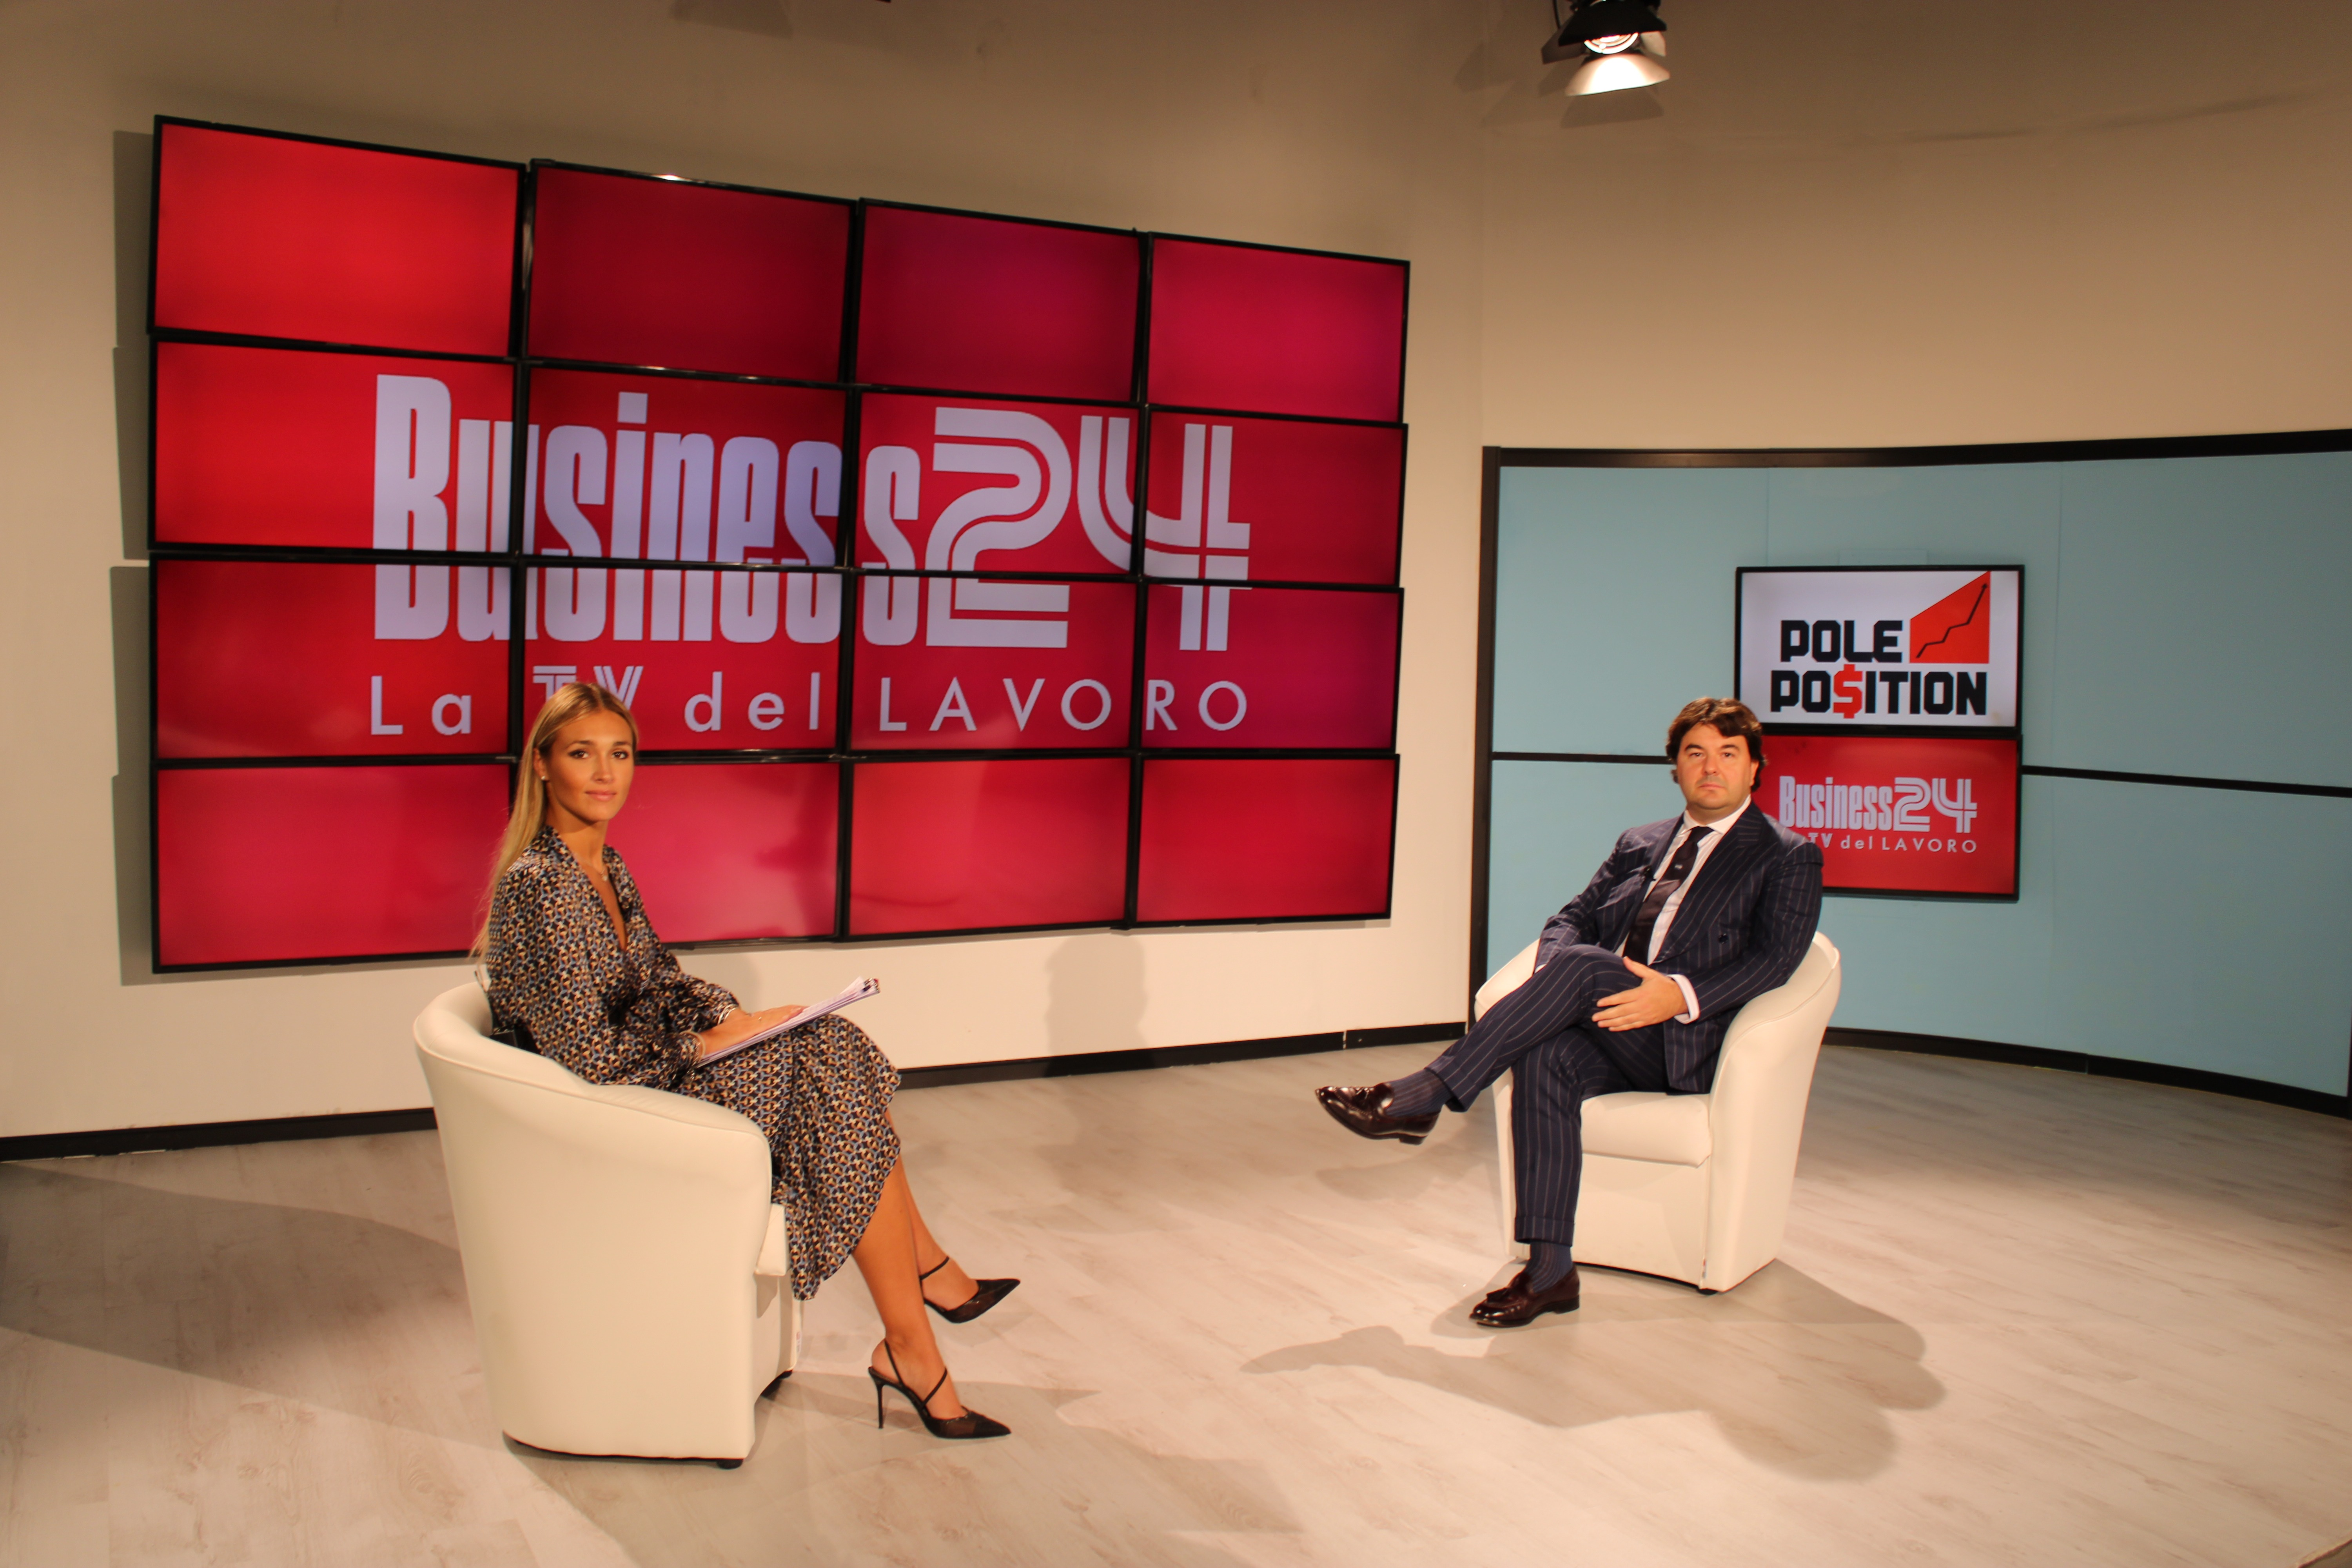 Interview with Matteo Zanetti on Pole Position TV programme